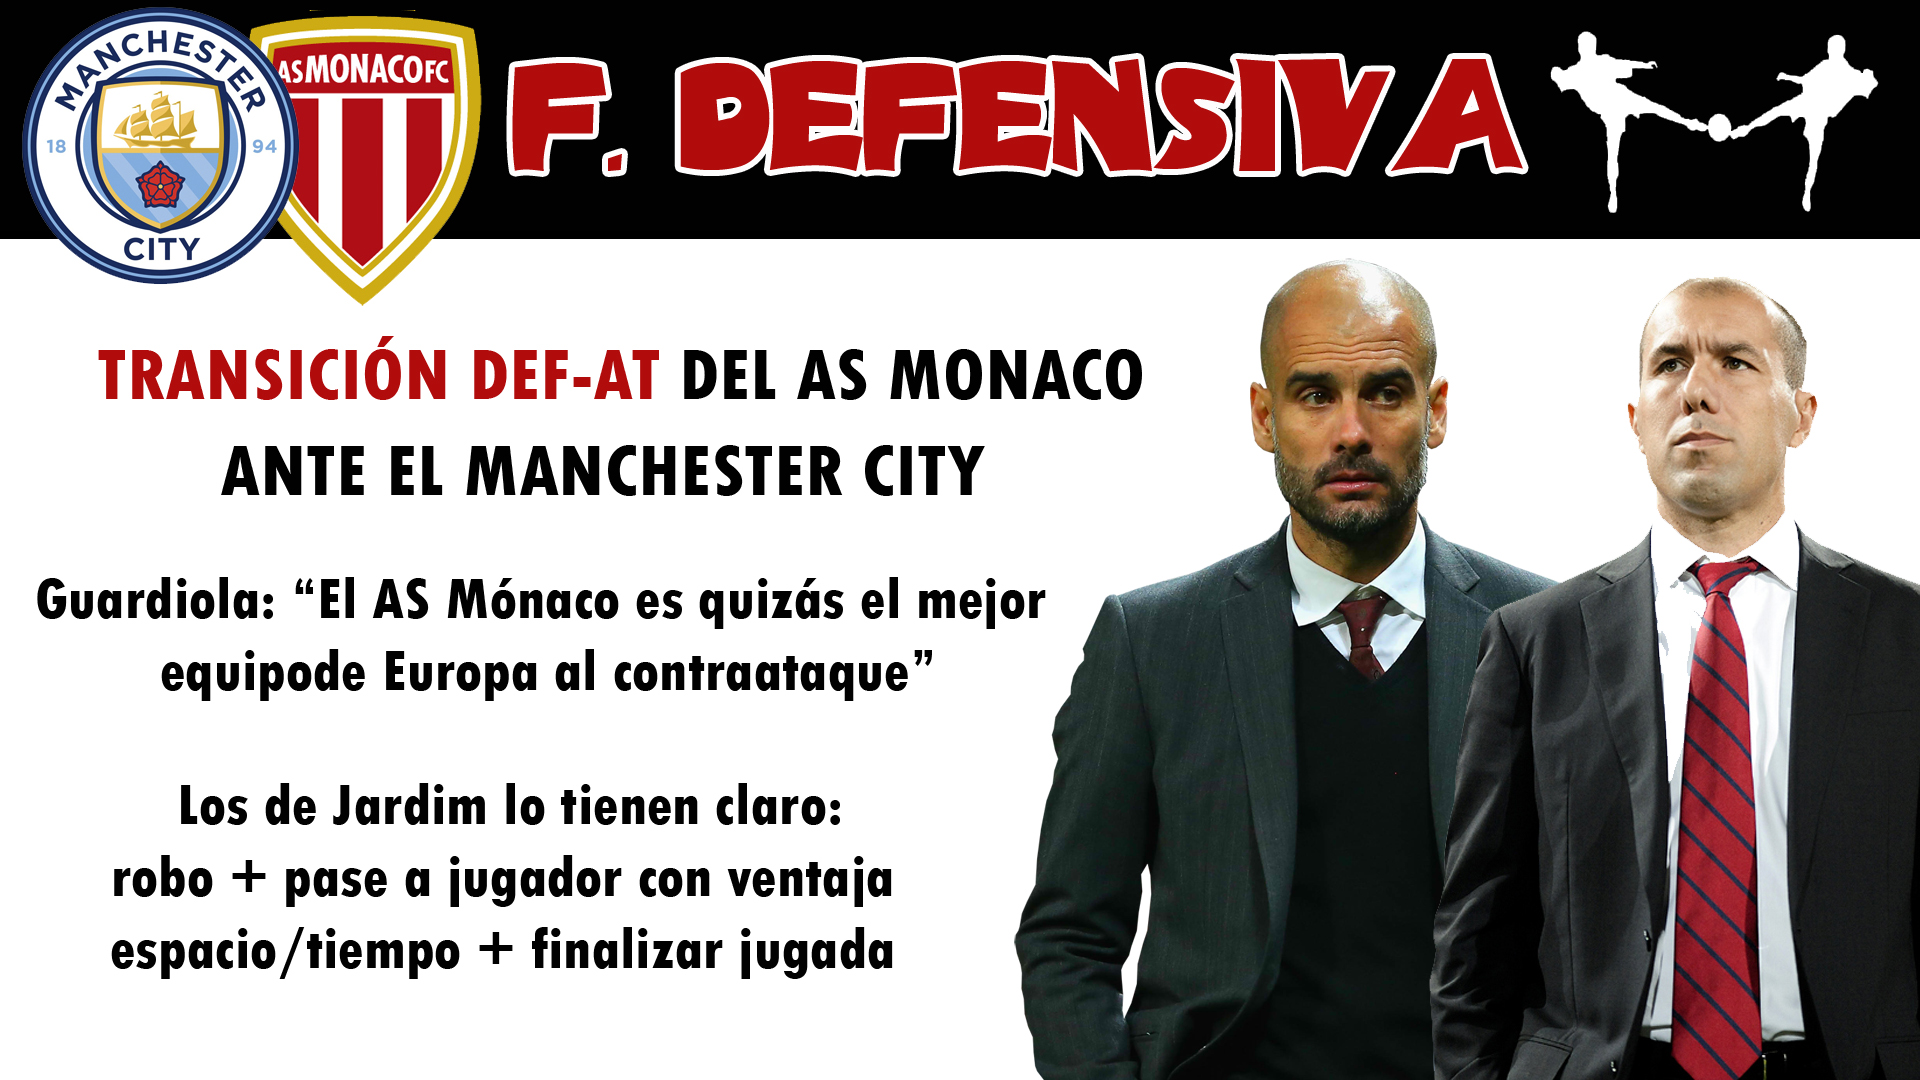 futbolcarrasco guardiola jardim contraataque monaco manchester city champions league falcao